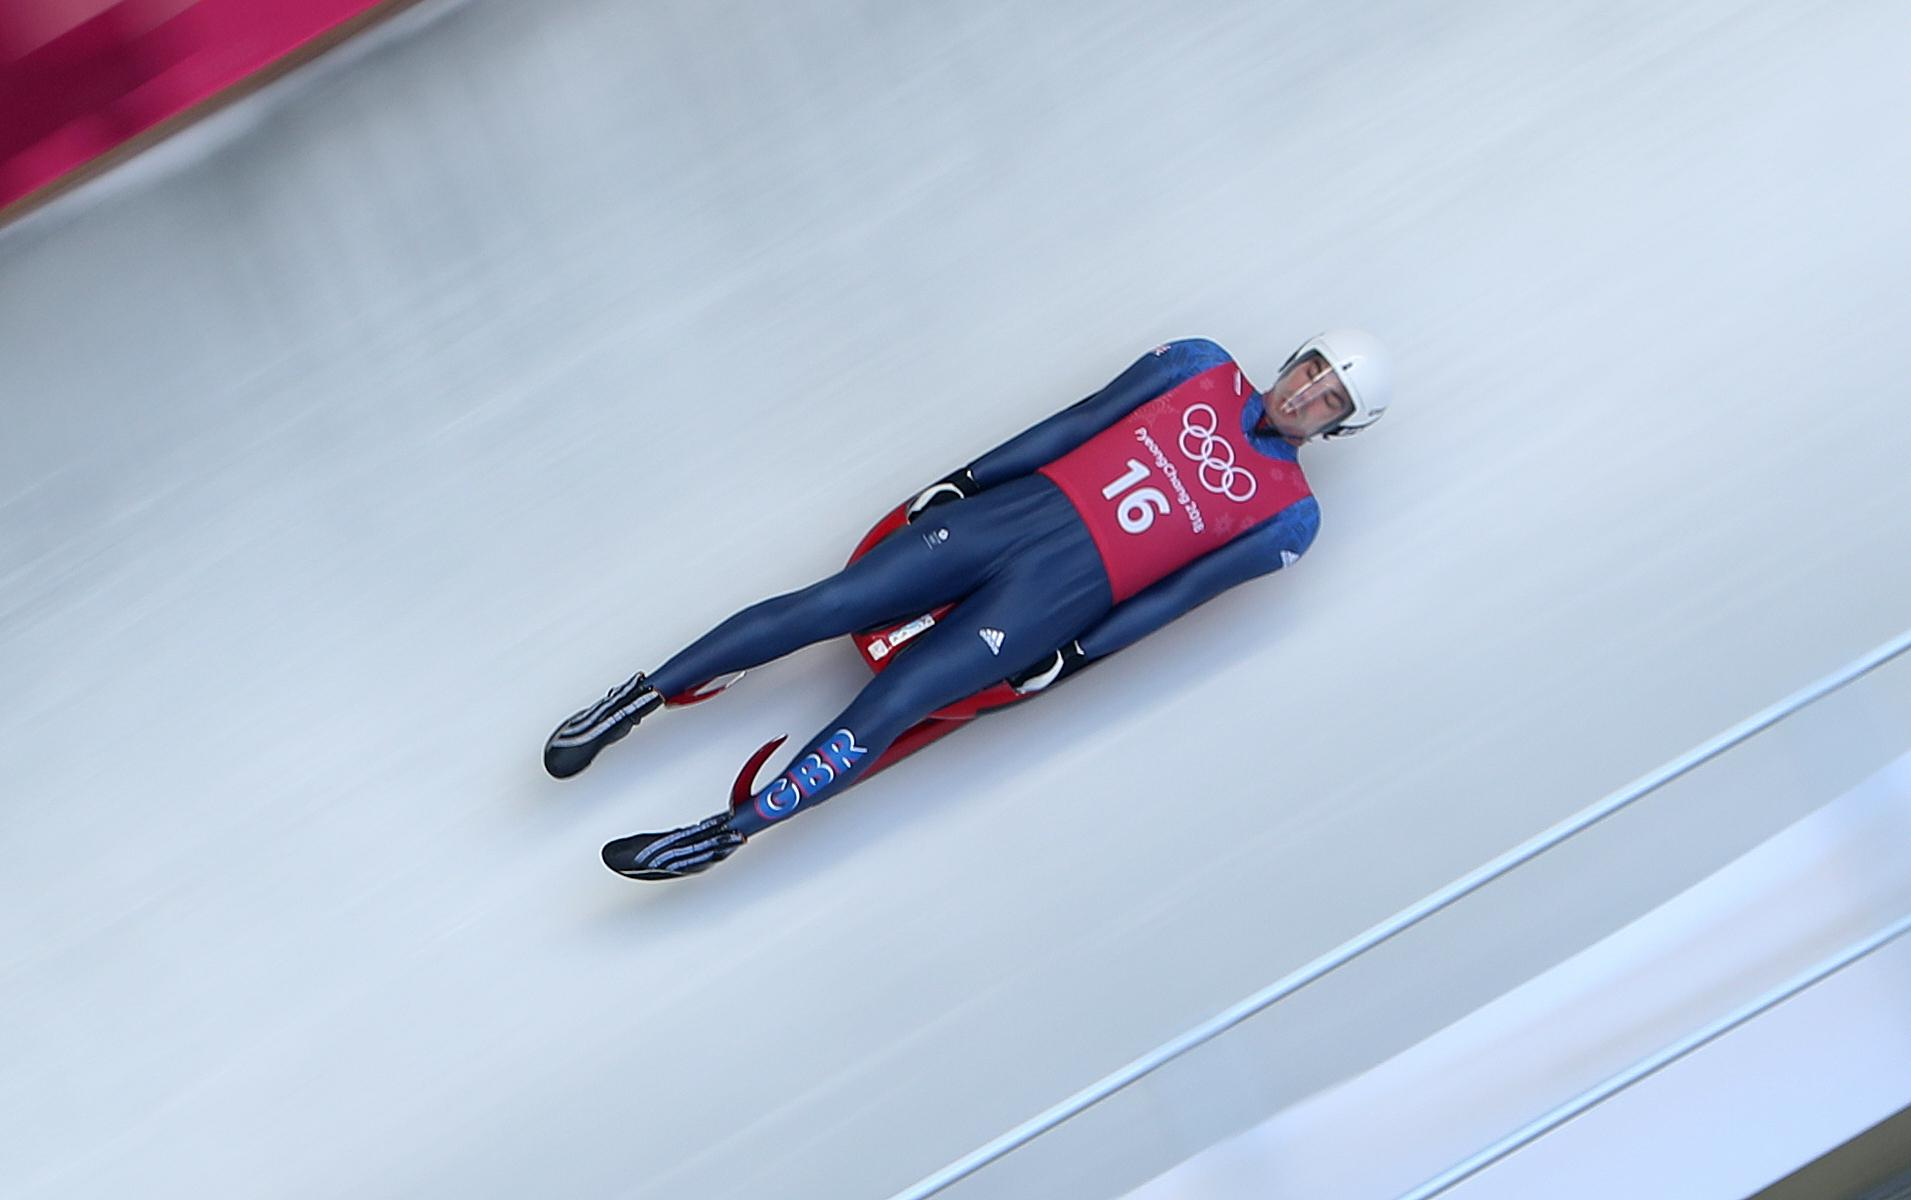 Adam Rosen is set to compete in his third Winter Olympics for Team GB